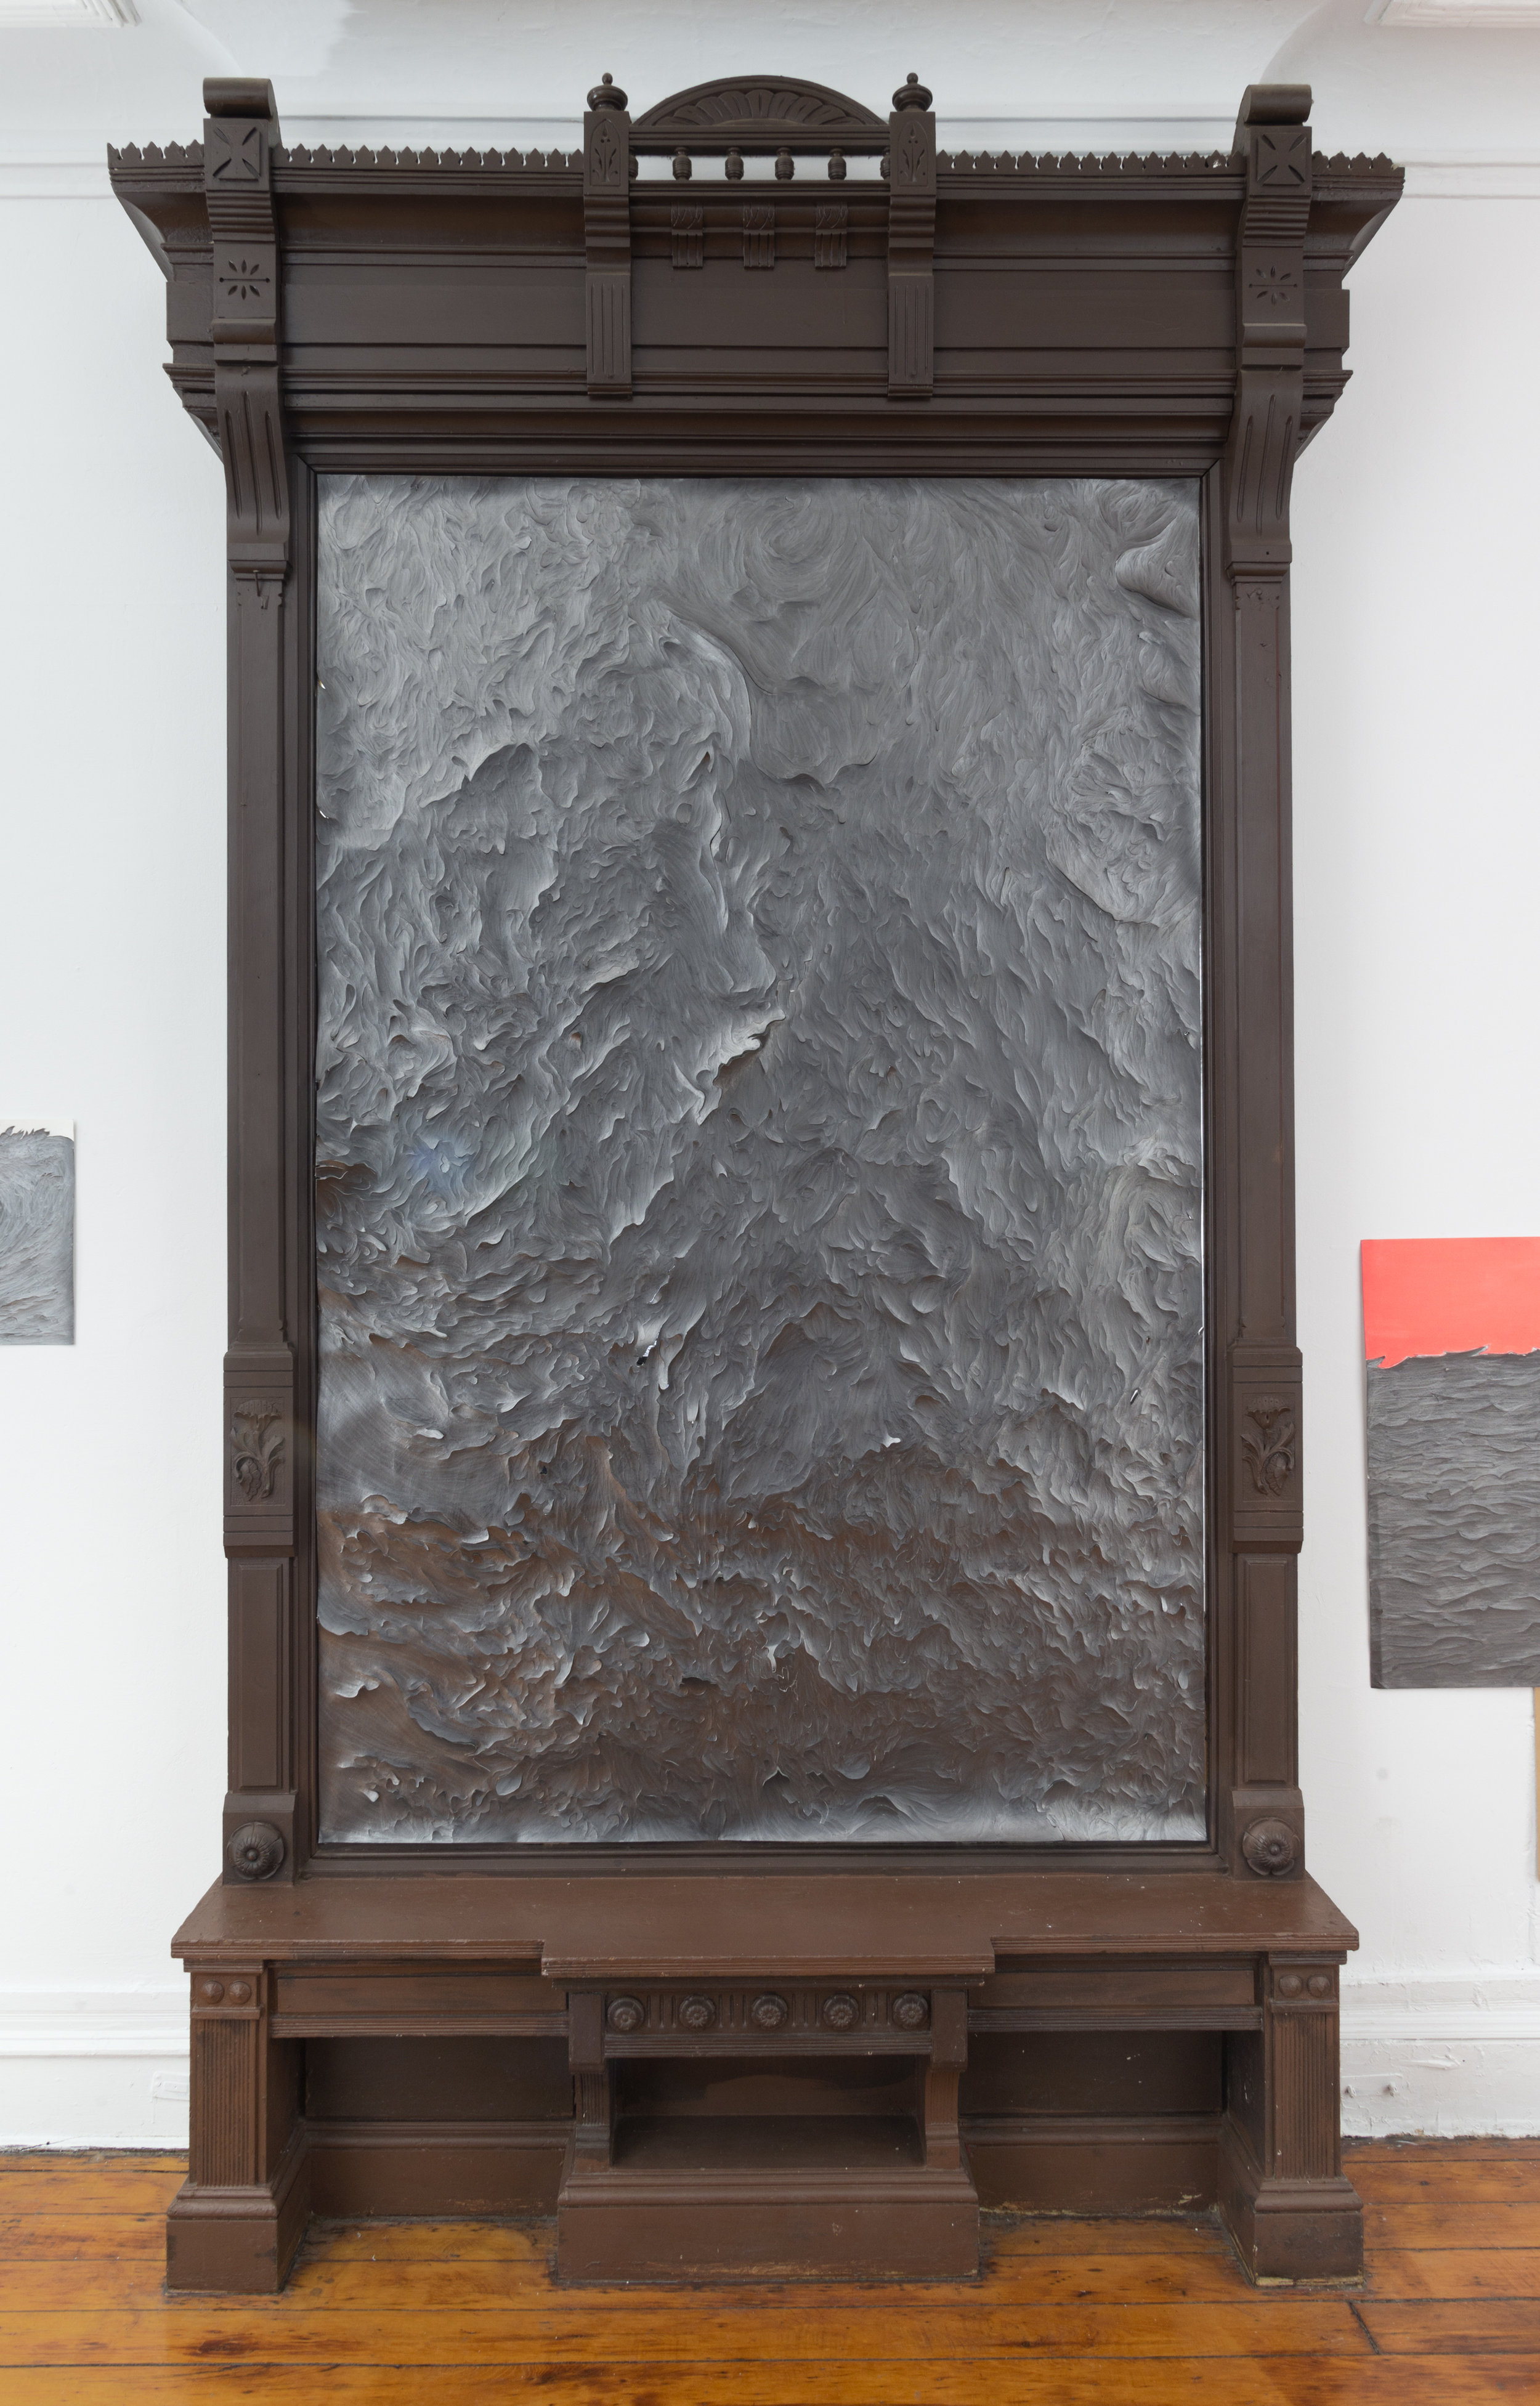 Oasa DuVerney, Black Power Wave Shifting Tides, 2018, graphite on handcut paper, 55 x 84 inches Full Mirror Frame.jpg